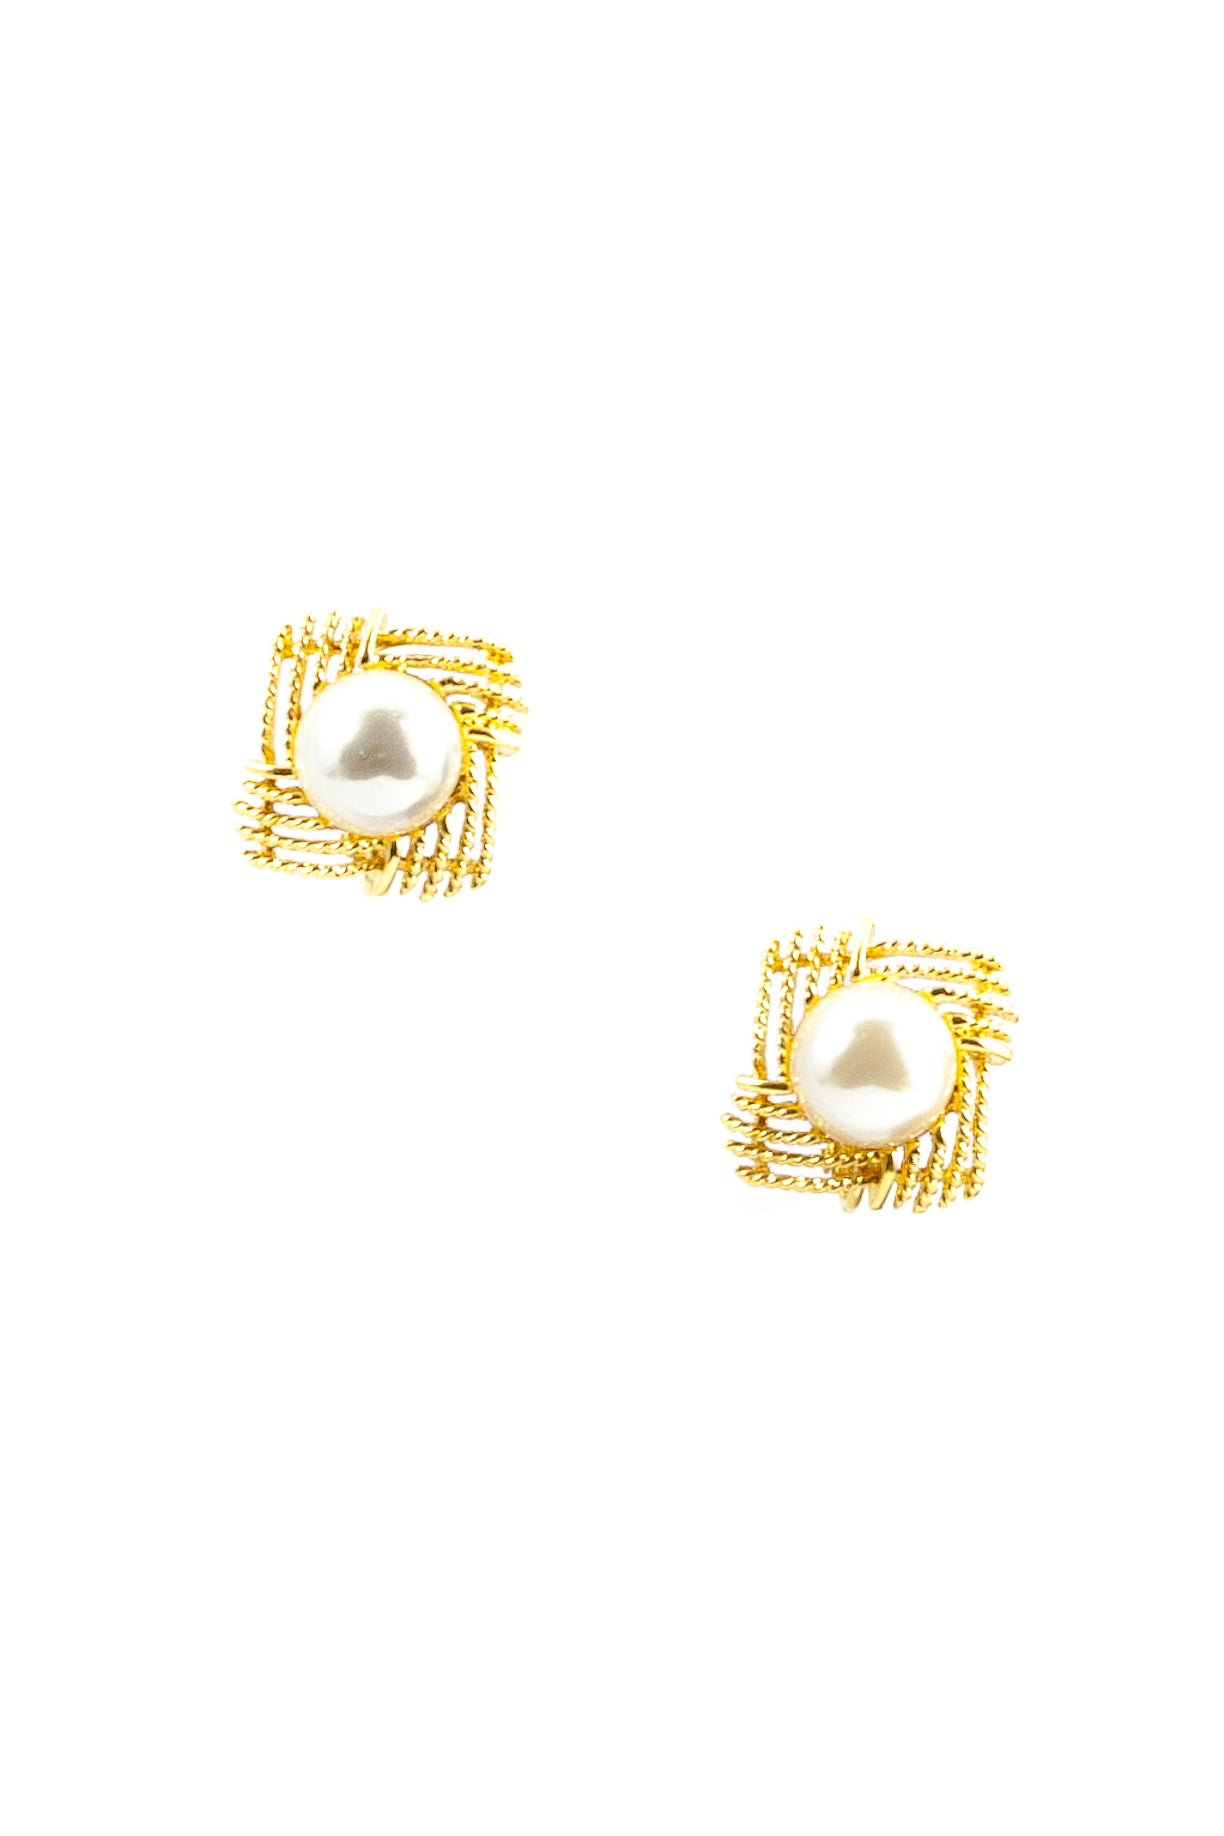 60's__Napier__Gold Framed Pearl Clips